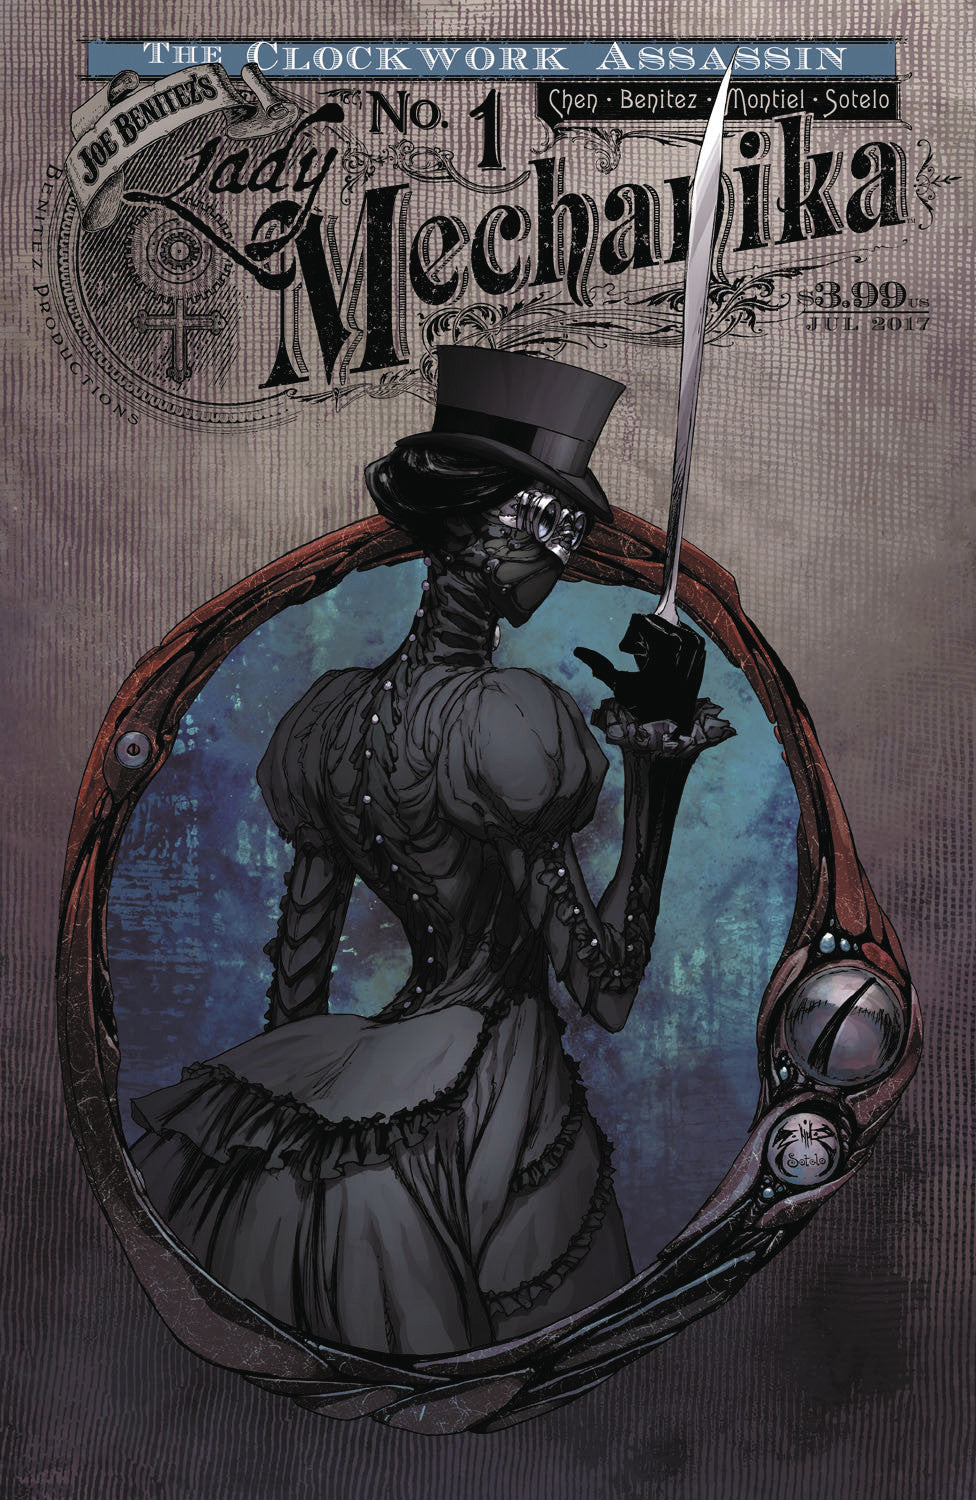 LADY MECHANIKA CLOCKWORK ASSASSIN #1